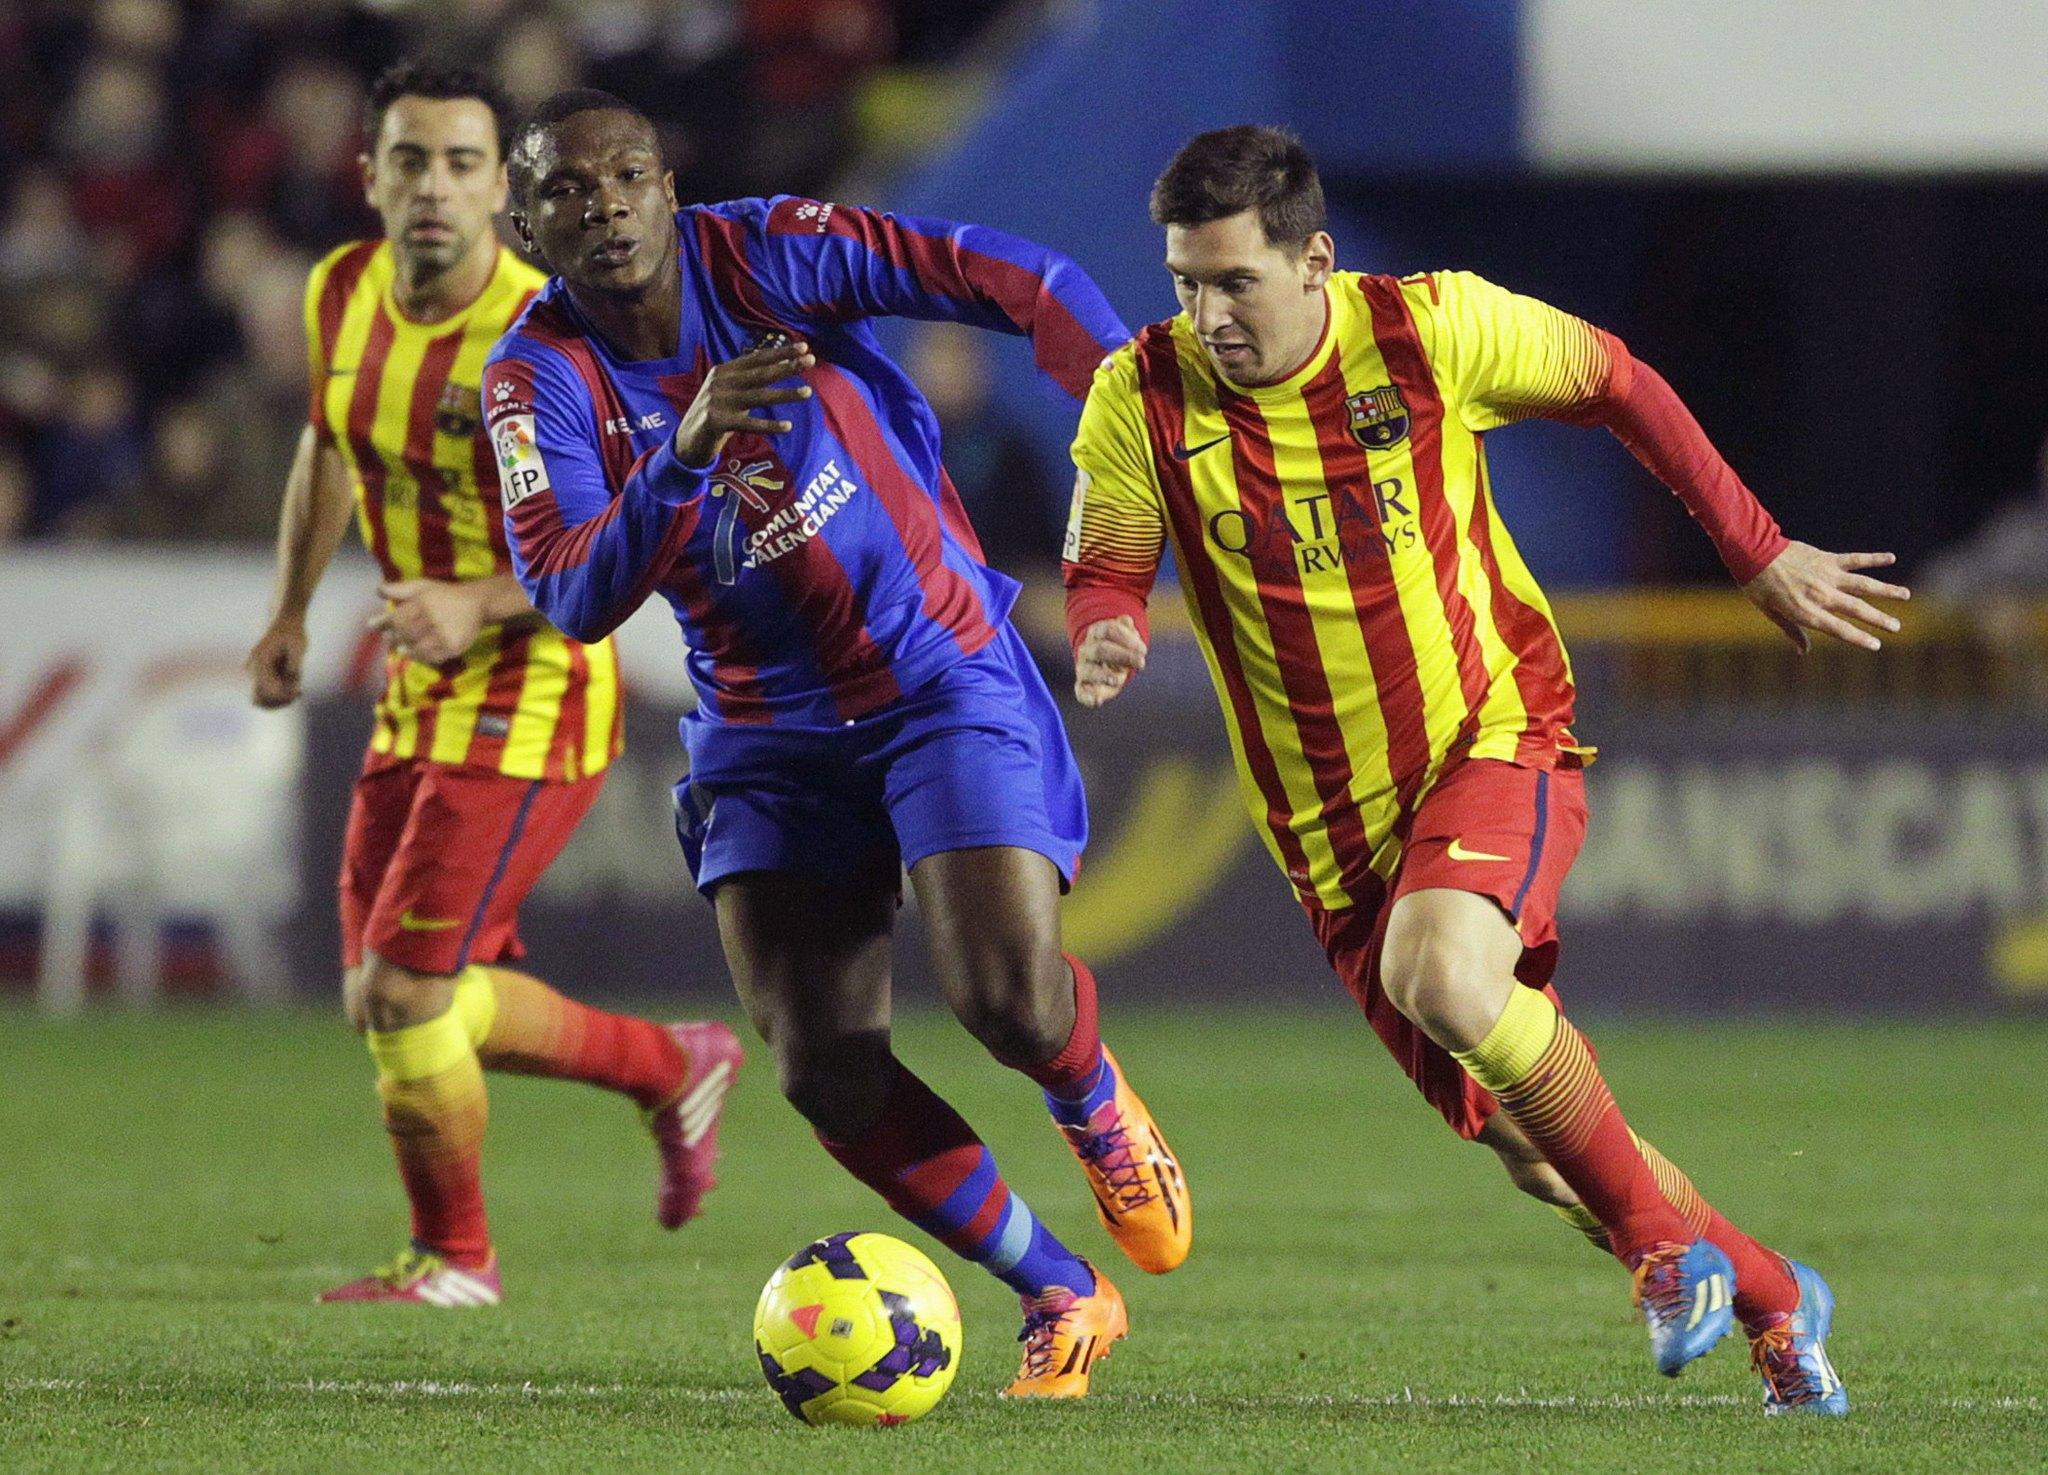 Barcelona's Lionel Messi (R) and Levante's Simao Junior fight for the ball, as Barcelona's Xavi Hernandez watches, during their Spanish First Division soccer match at the Ciudad de Valencia stadium in Valencia, January 19, 2014.